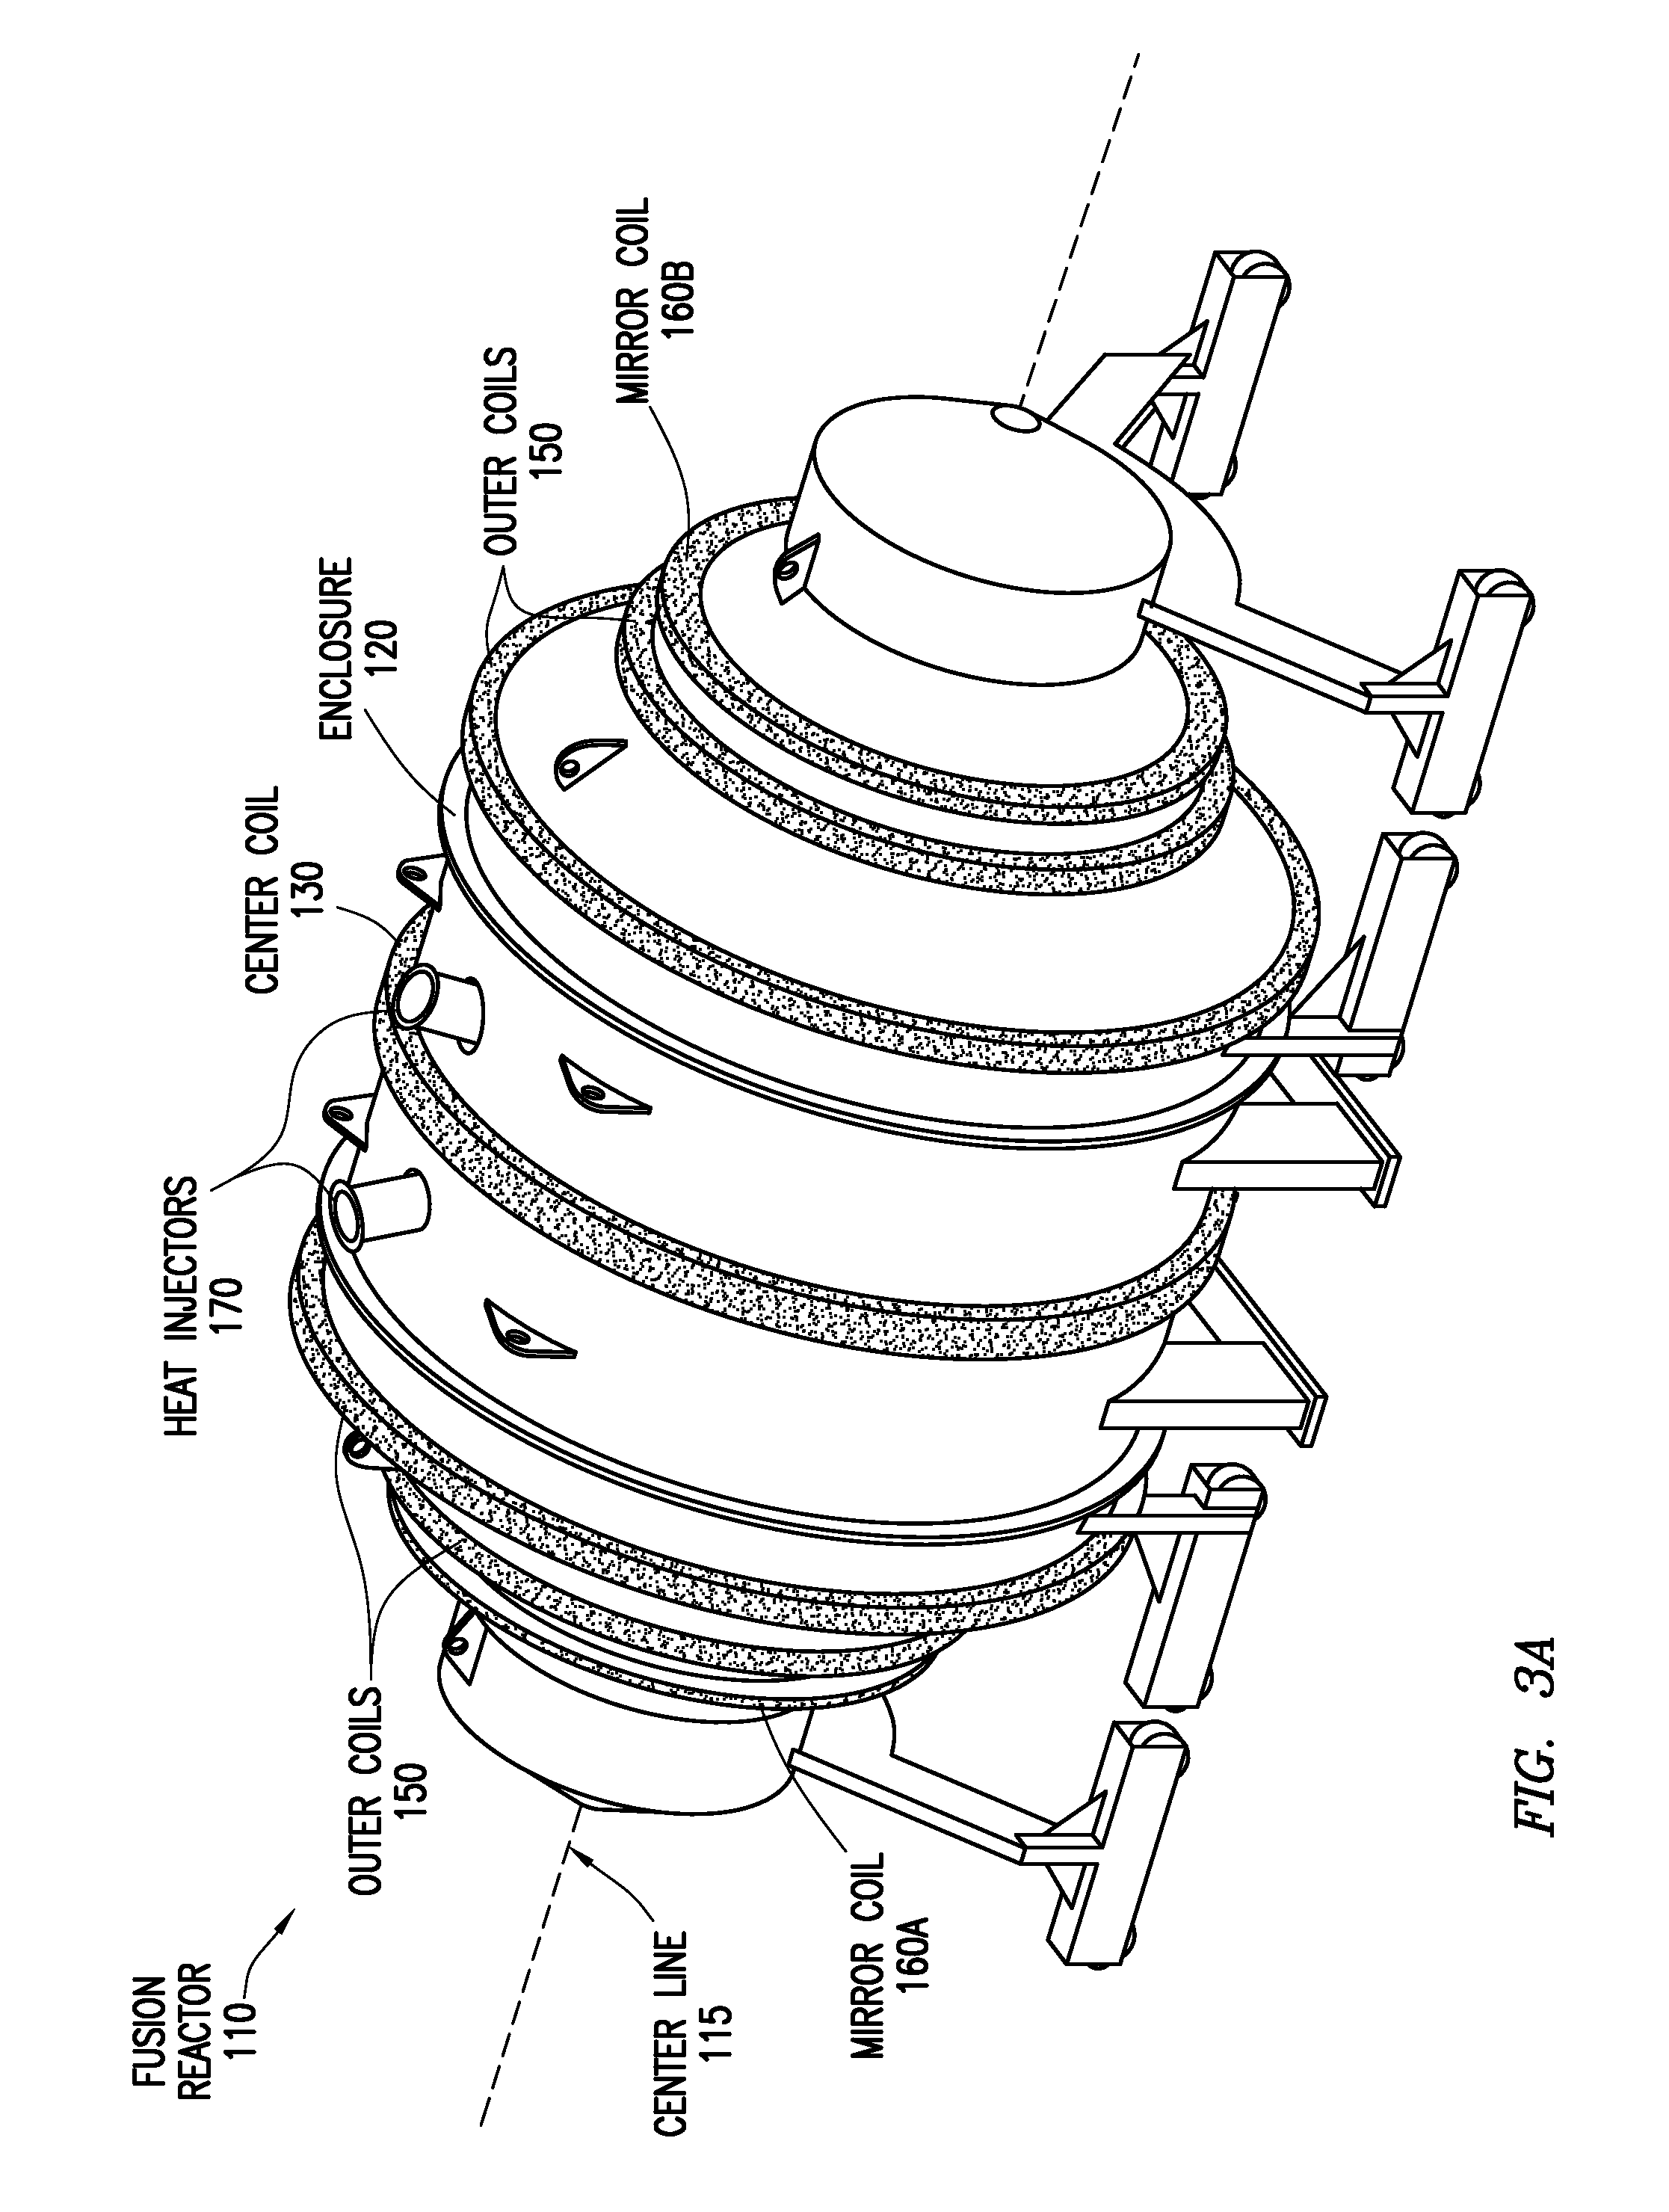 patent us20140301519 - heating plasma for fusion power using magnetic field oscillation